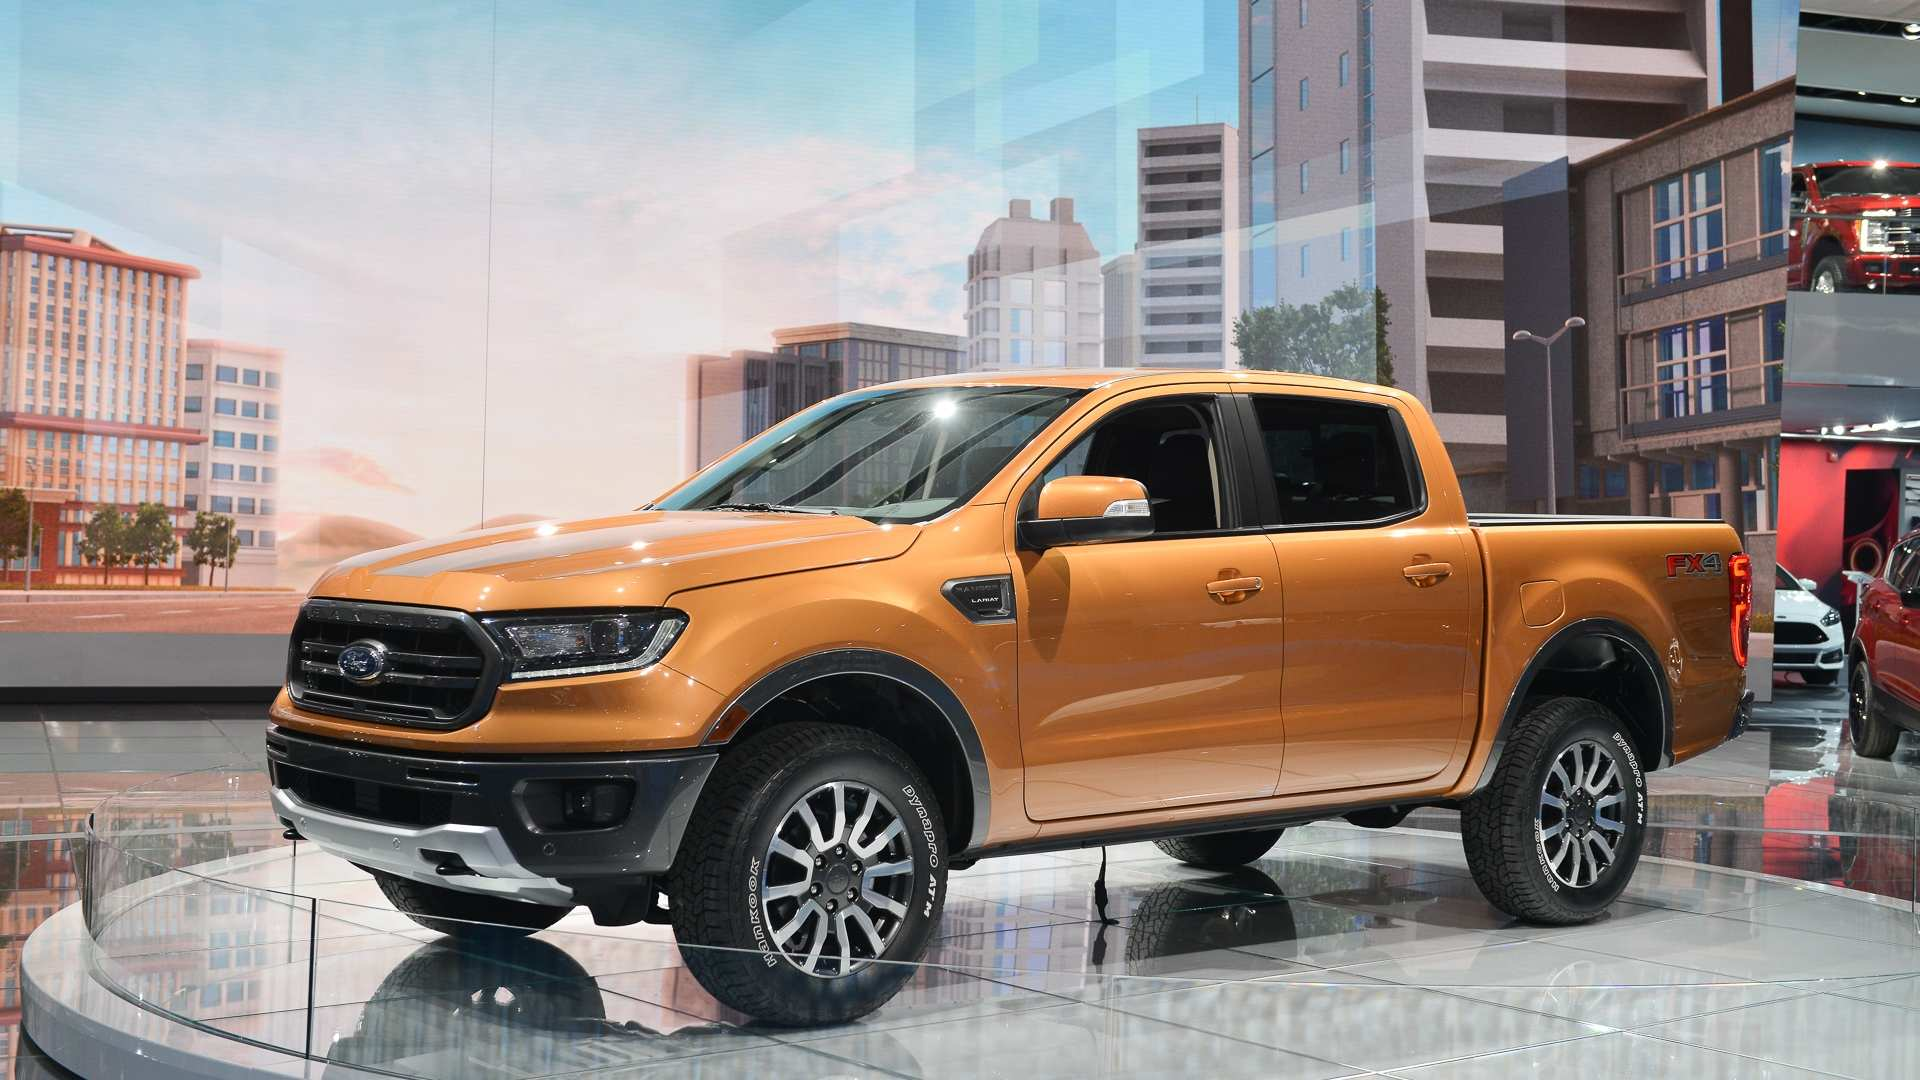 58 The 2019 Ford Ranger Auto Show Model